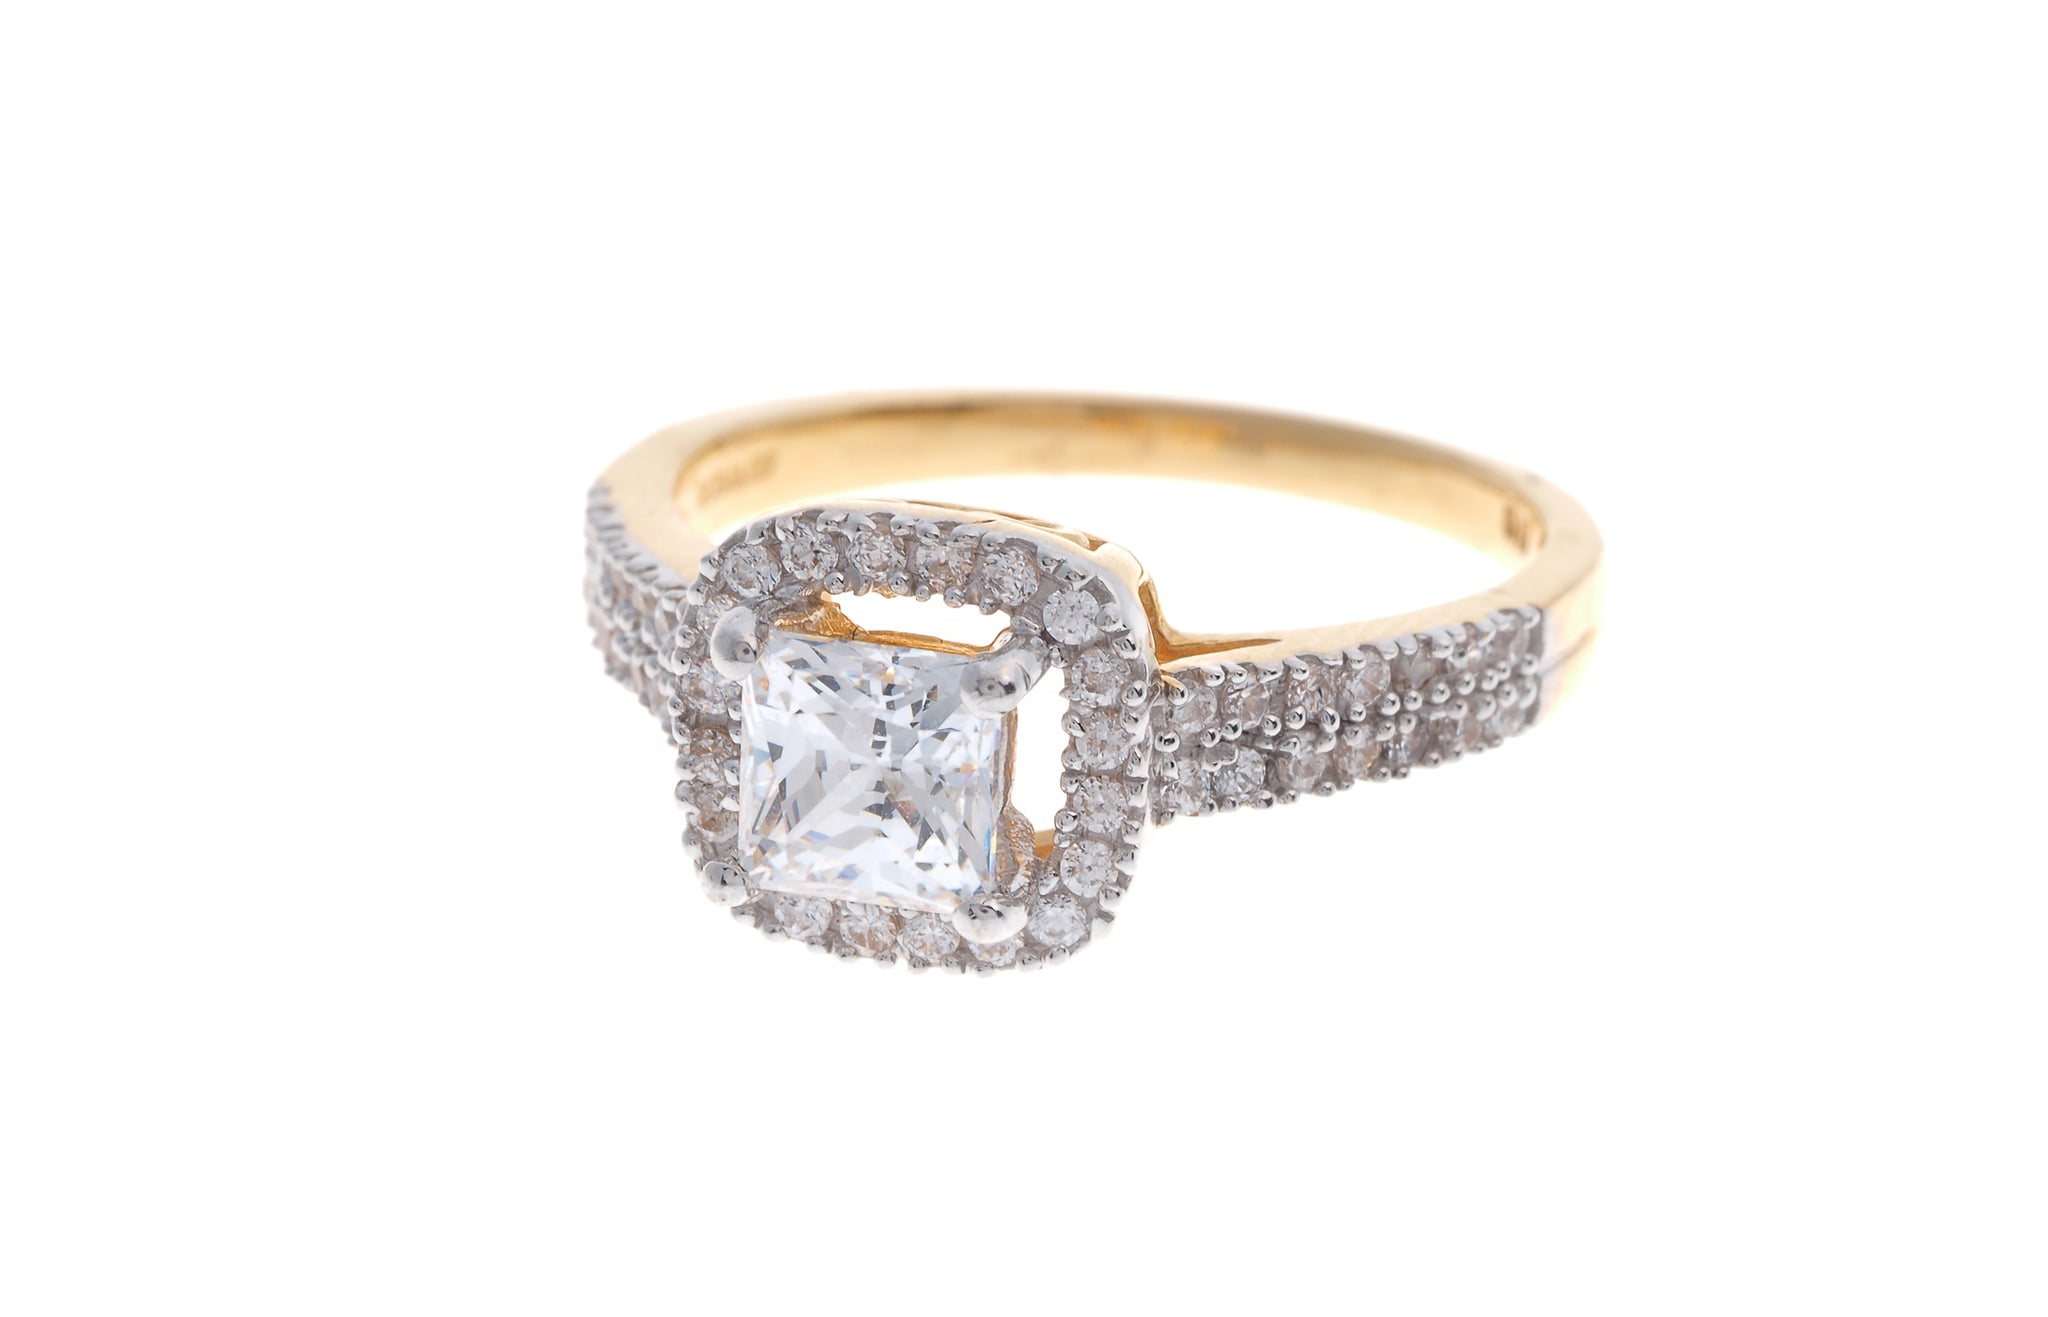 22ct Gold Cubic Zirconia Engagement Ring LR14284